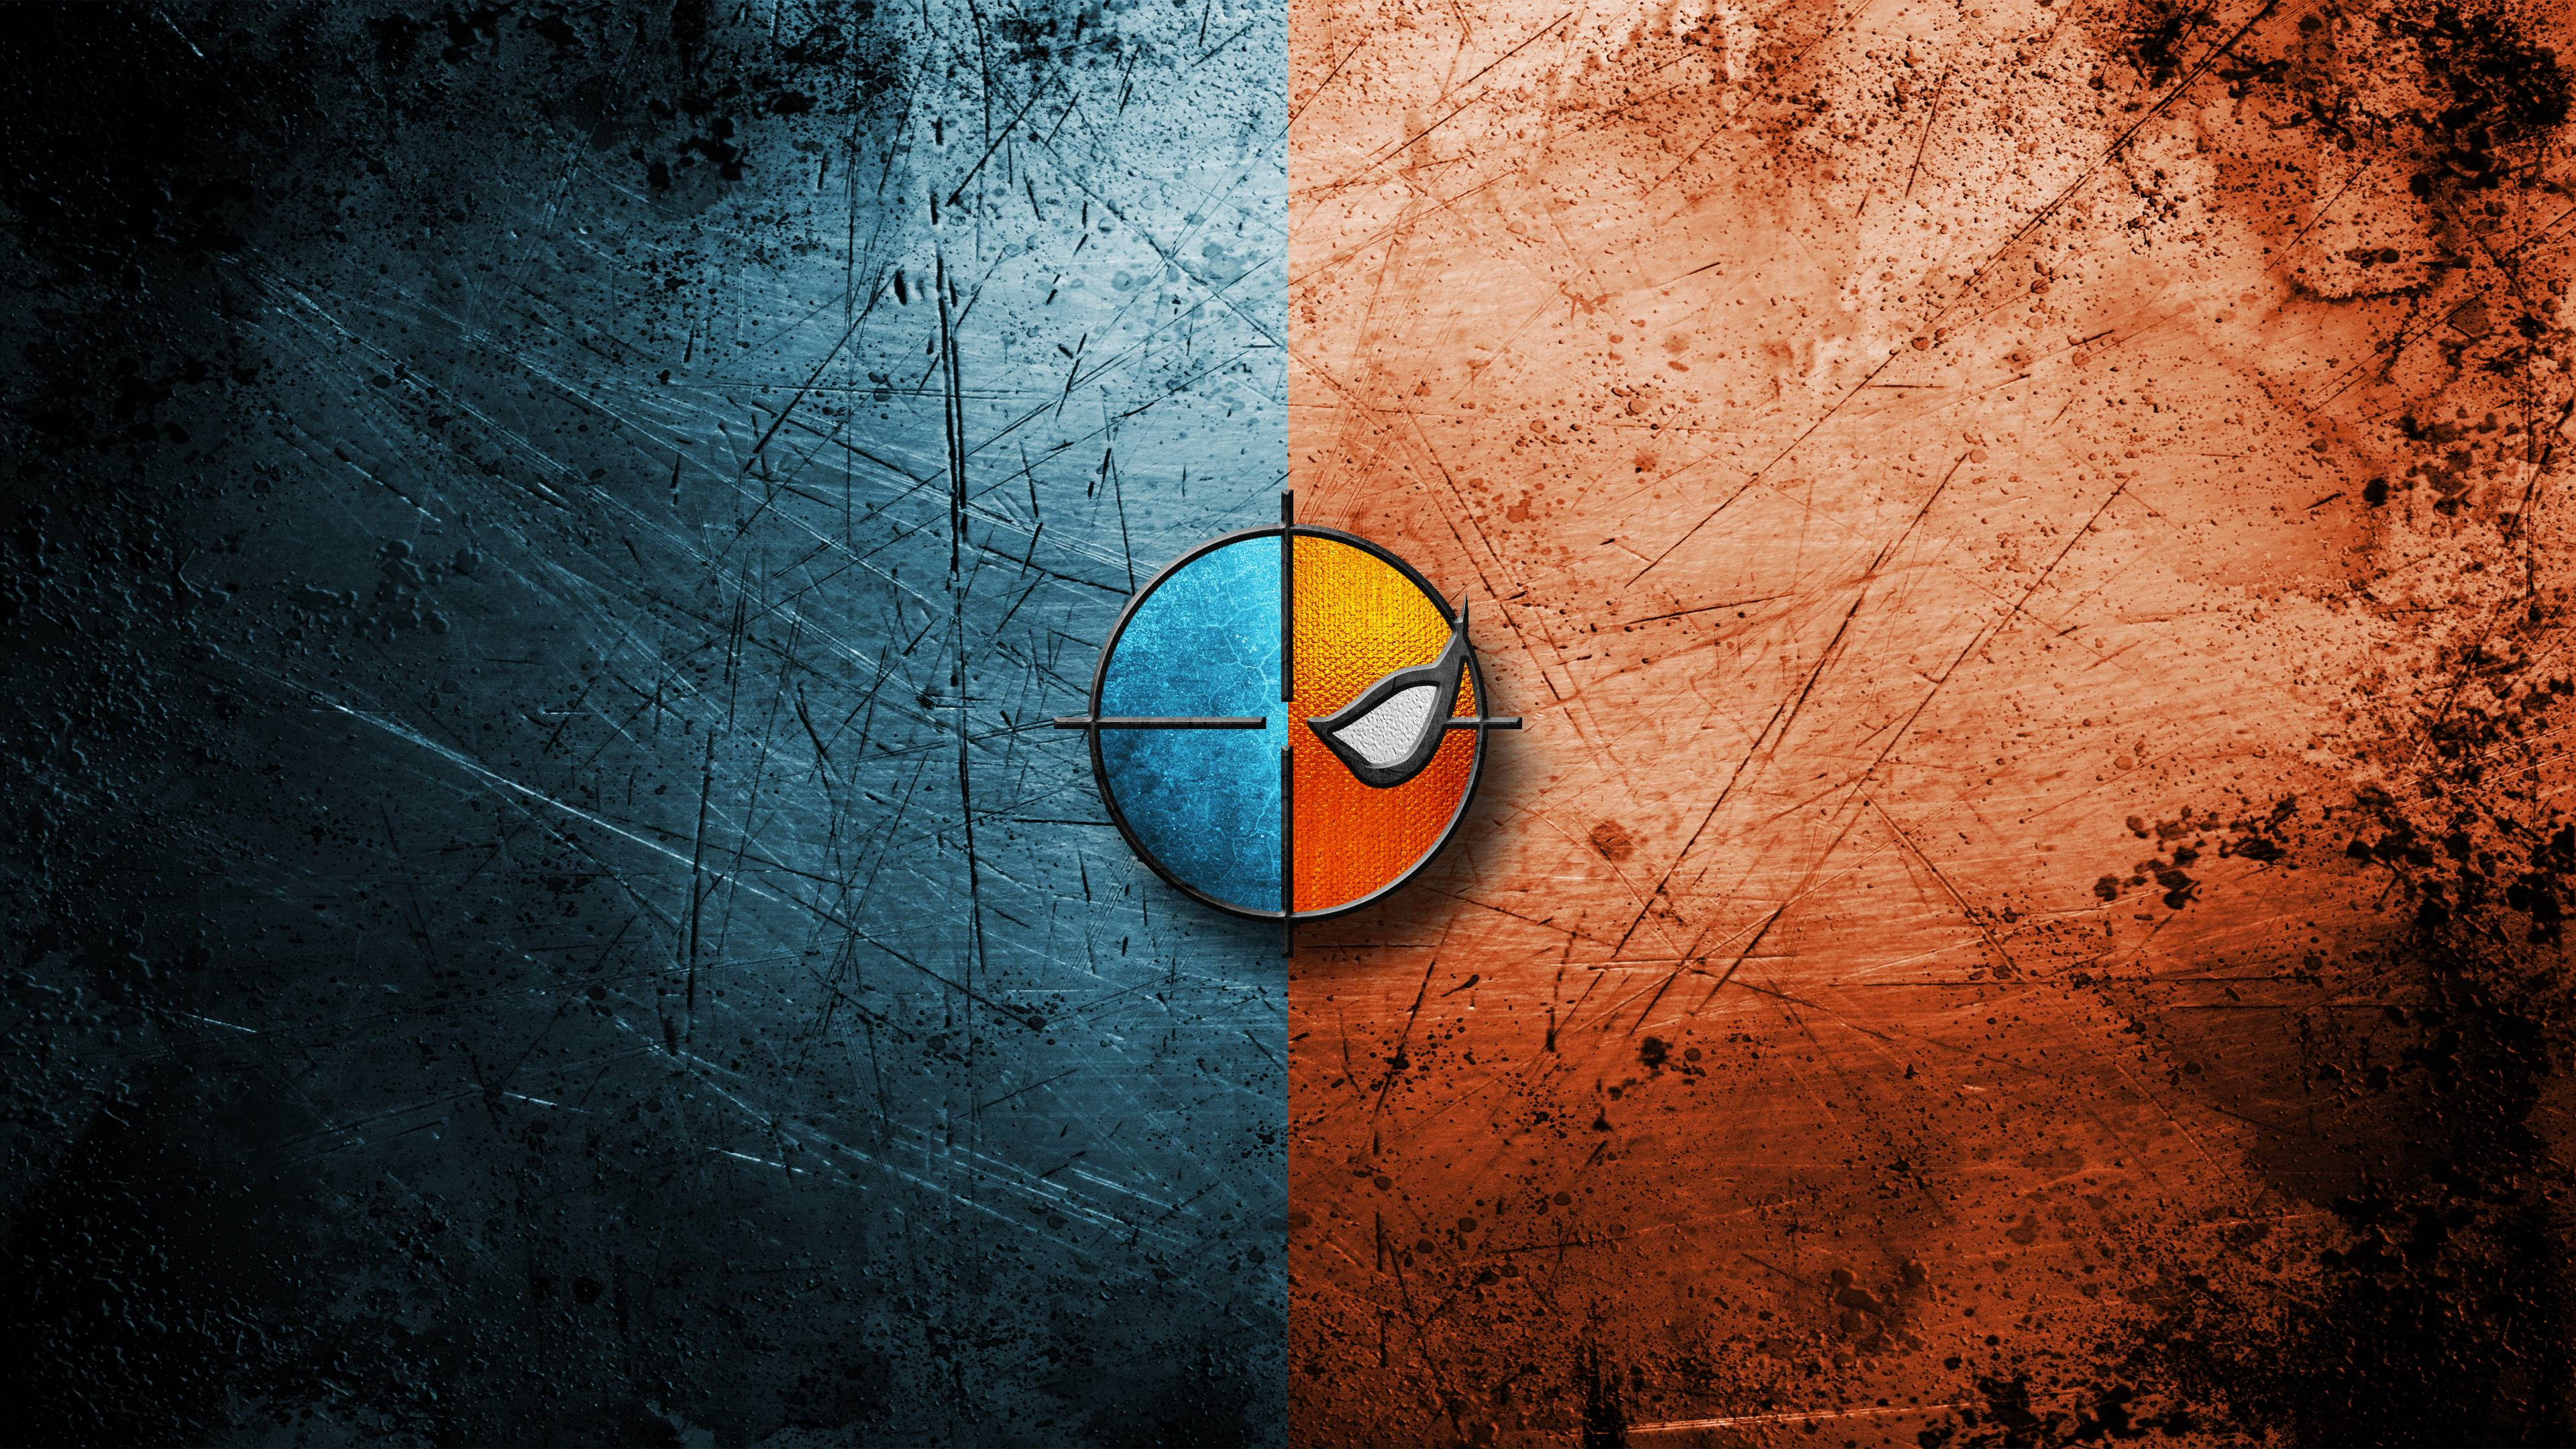 deathstroke minimalism 4k 1548527388 - Deathstroke Minimalism 4k - superheroes wallpapers, logo wallpapers, hd-wallpapers, deathstroke wallpapers, background wallpapers, 4k-wallpapers